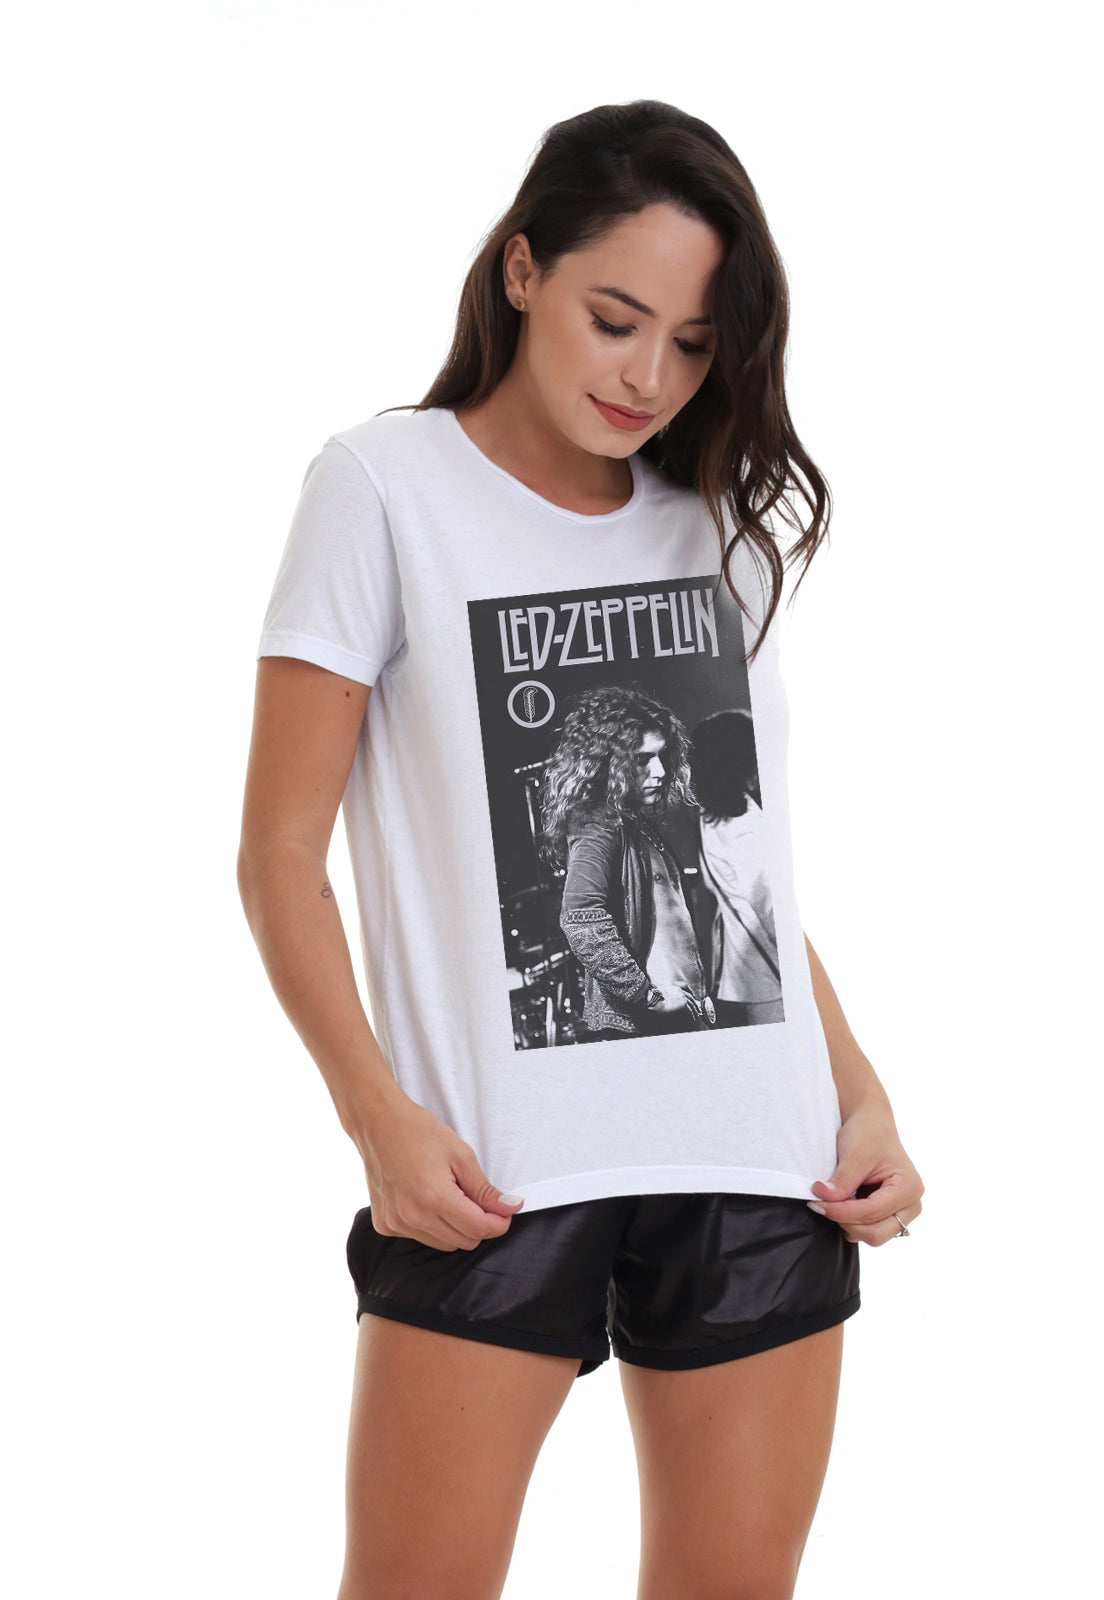 CAMISETA FEMININA BÁSICA ESTAMPADA JOSS - LED ZEPELLIN ROCK